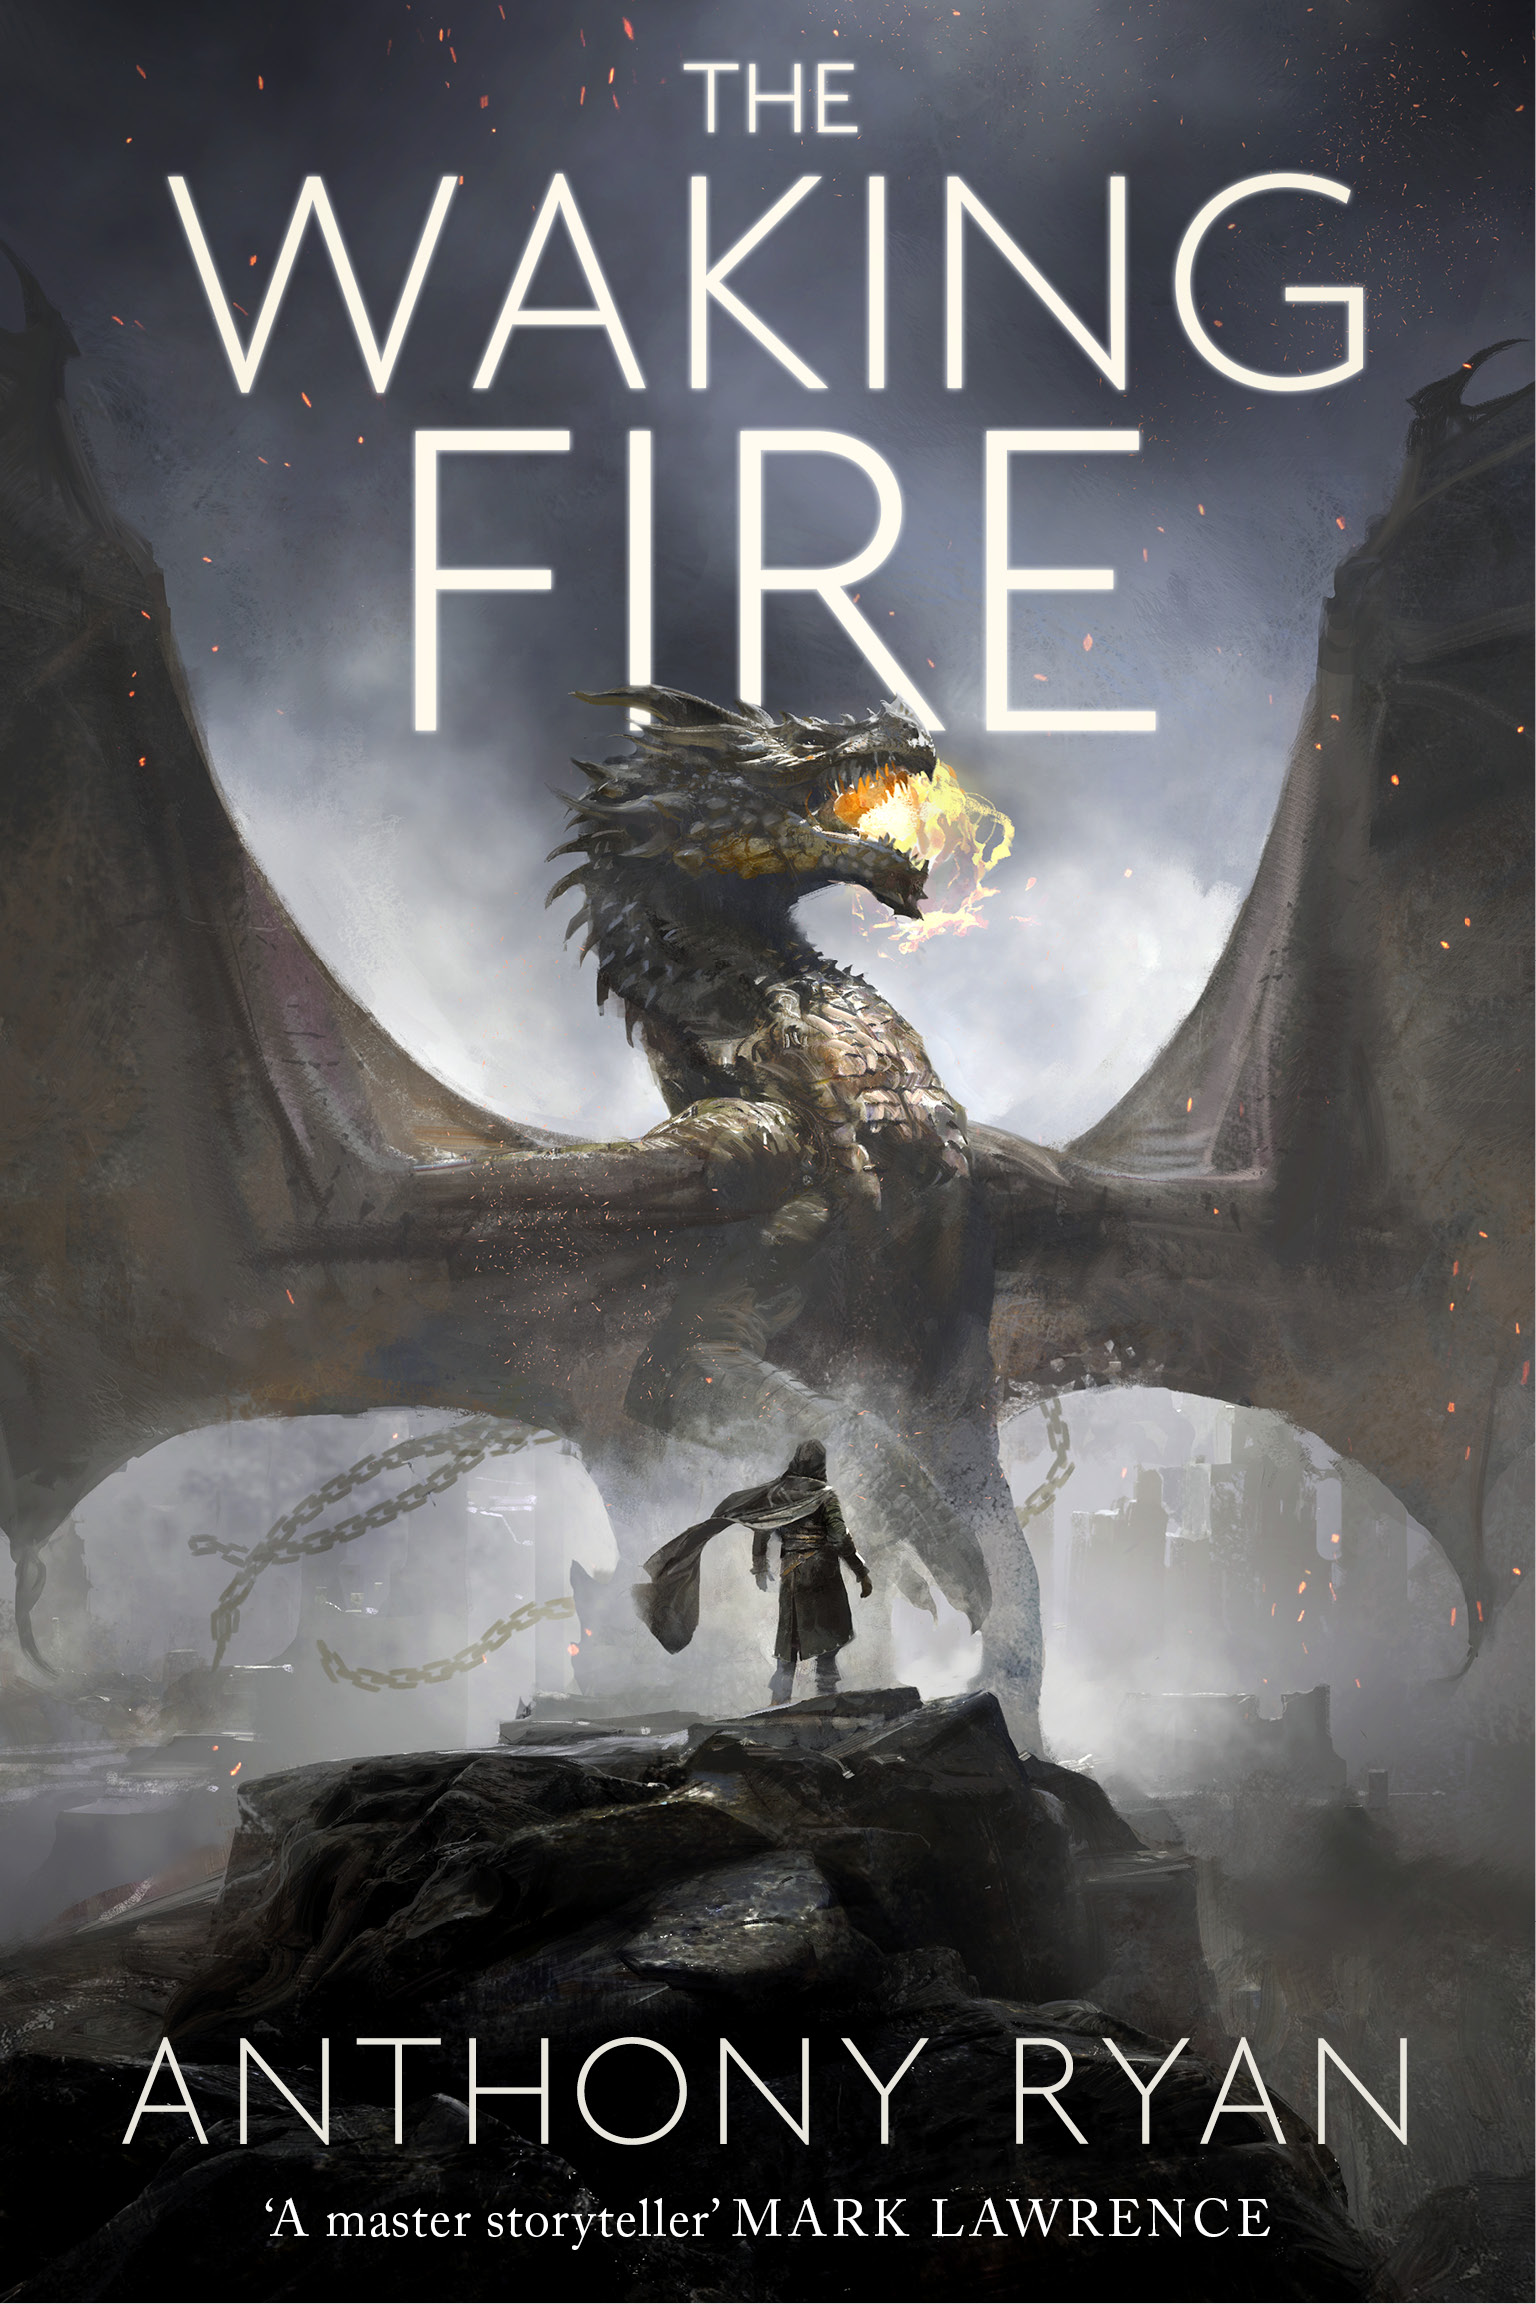 Amazon Uk Books The Waking Fire Ebook On Sale For 1 99 On Amazon Uk